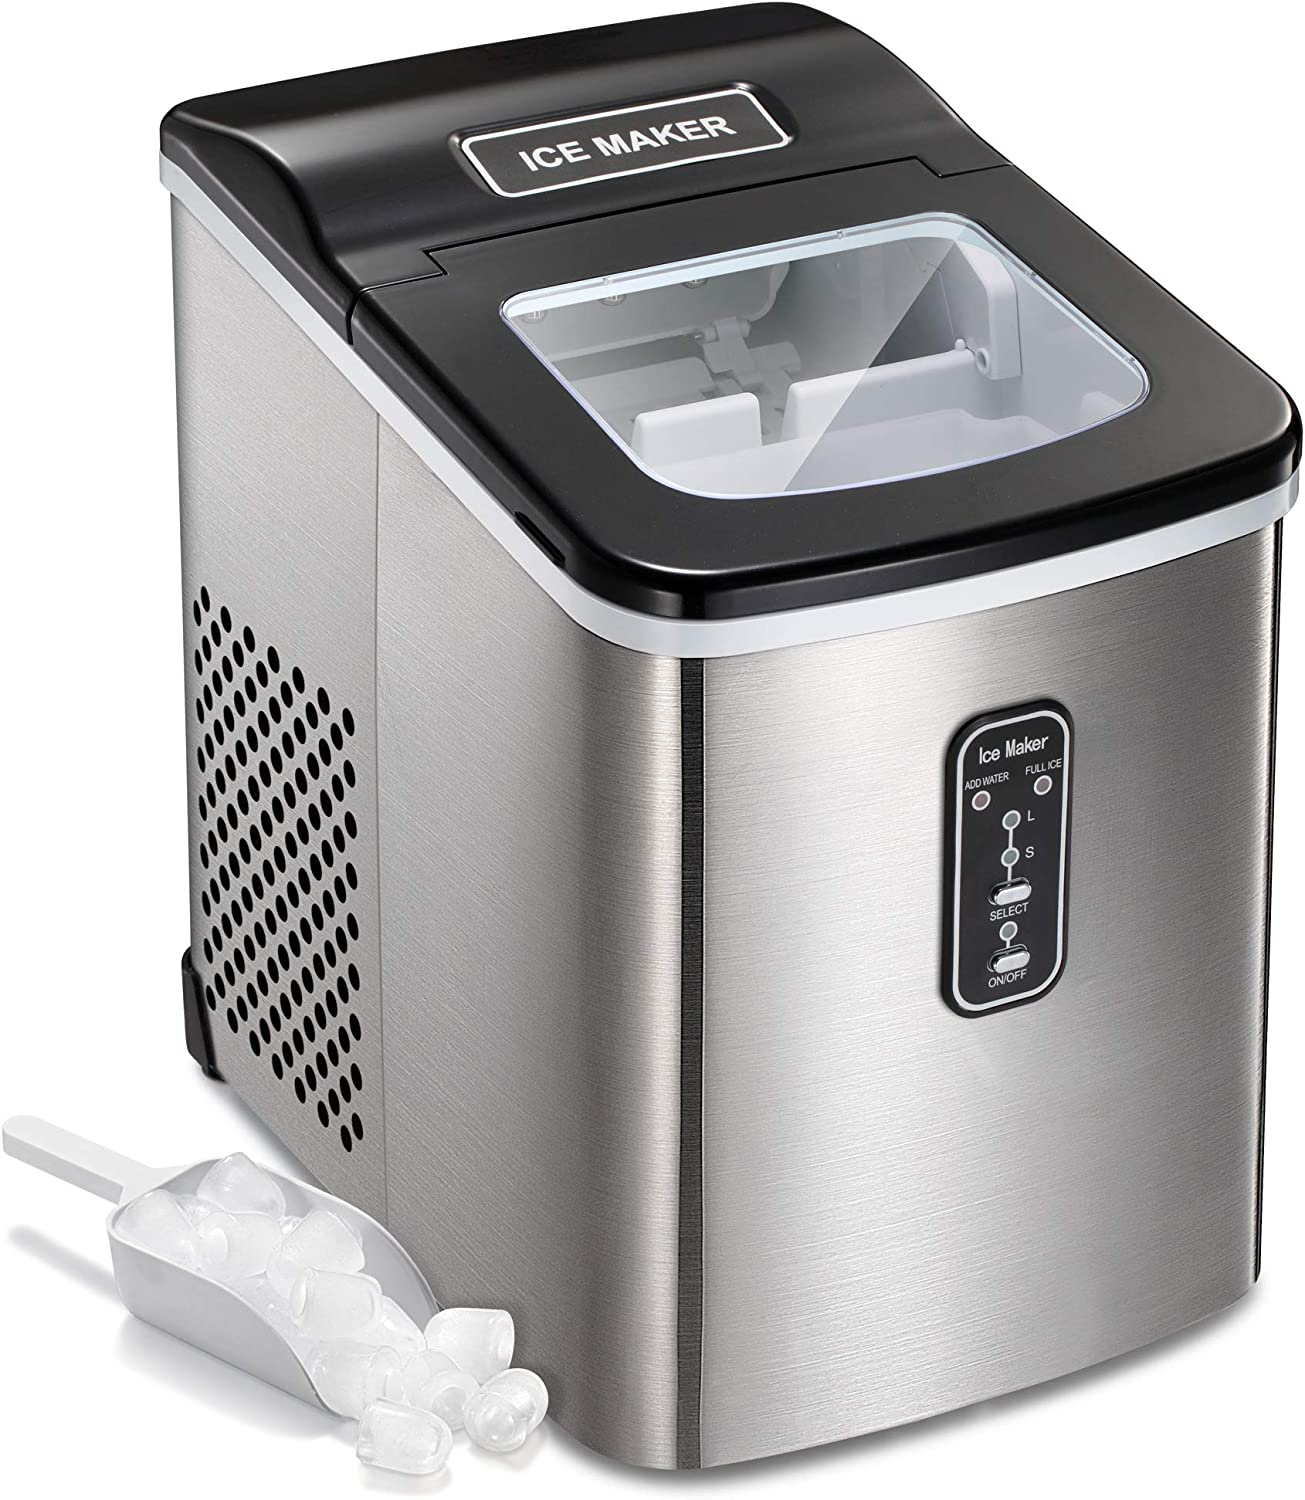 AGLUCKY Countertop Ice Maker Machine Stainless Steel Covers, Portable Automatic Ice Maker,26lbs/24hr,9pcs S/L Size Ice Cube Ready in 6-13 Mins,1.5lbs Ice Storage with Ice Scoop,Indicator Function